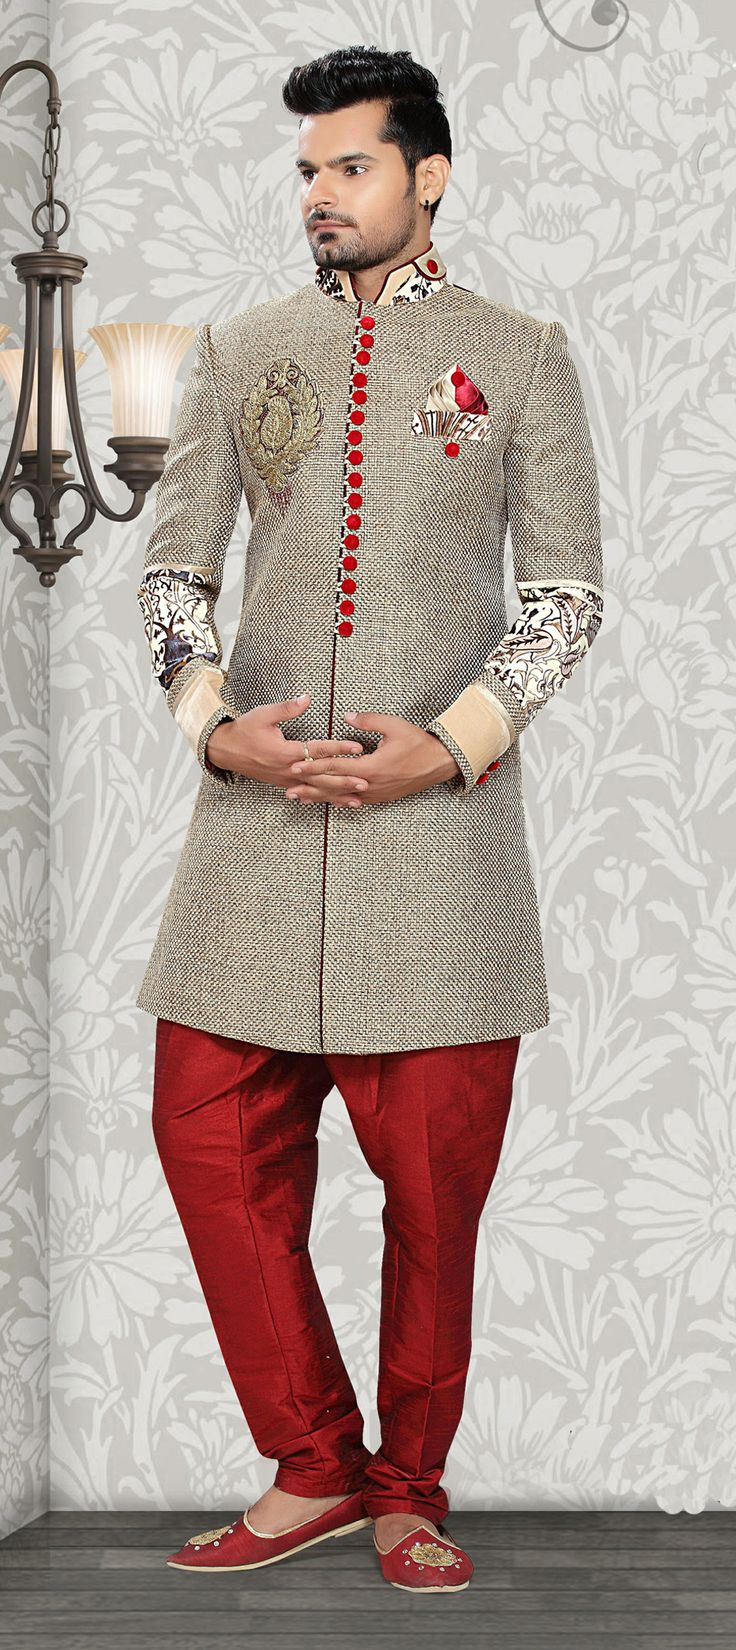 14689: #Menswear in #Jute fabric - now this is something new! Shop this exclusive #sherwani.  #groom #wedding